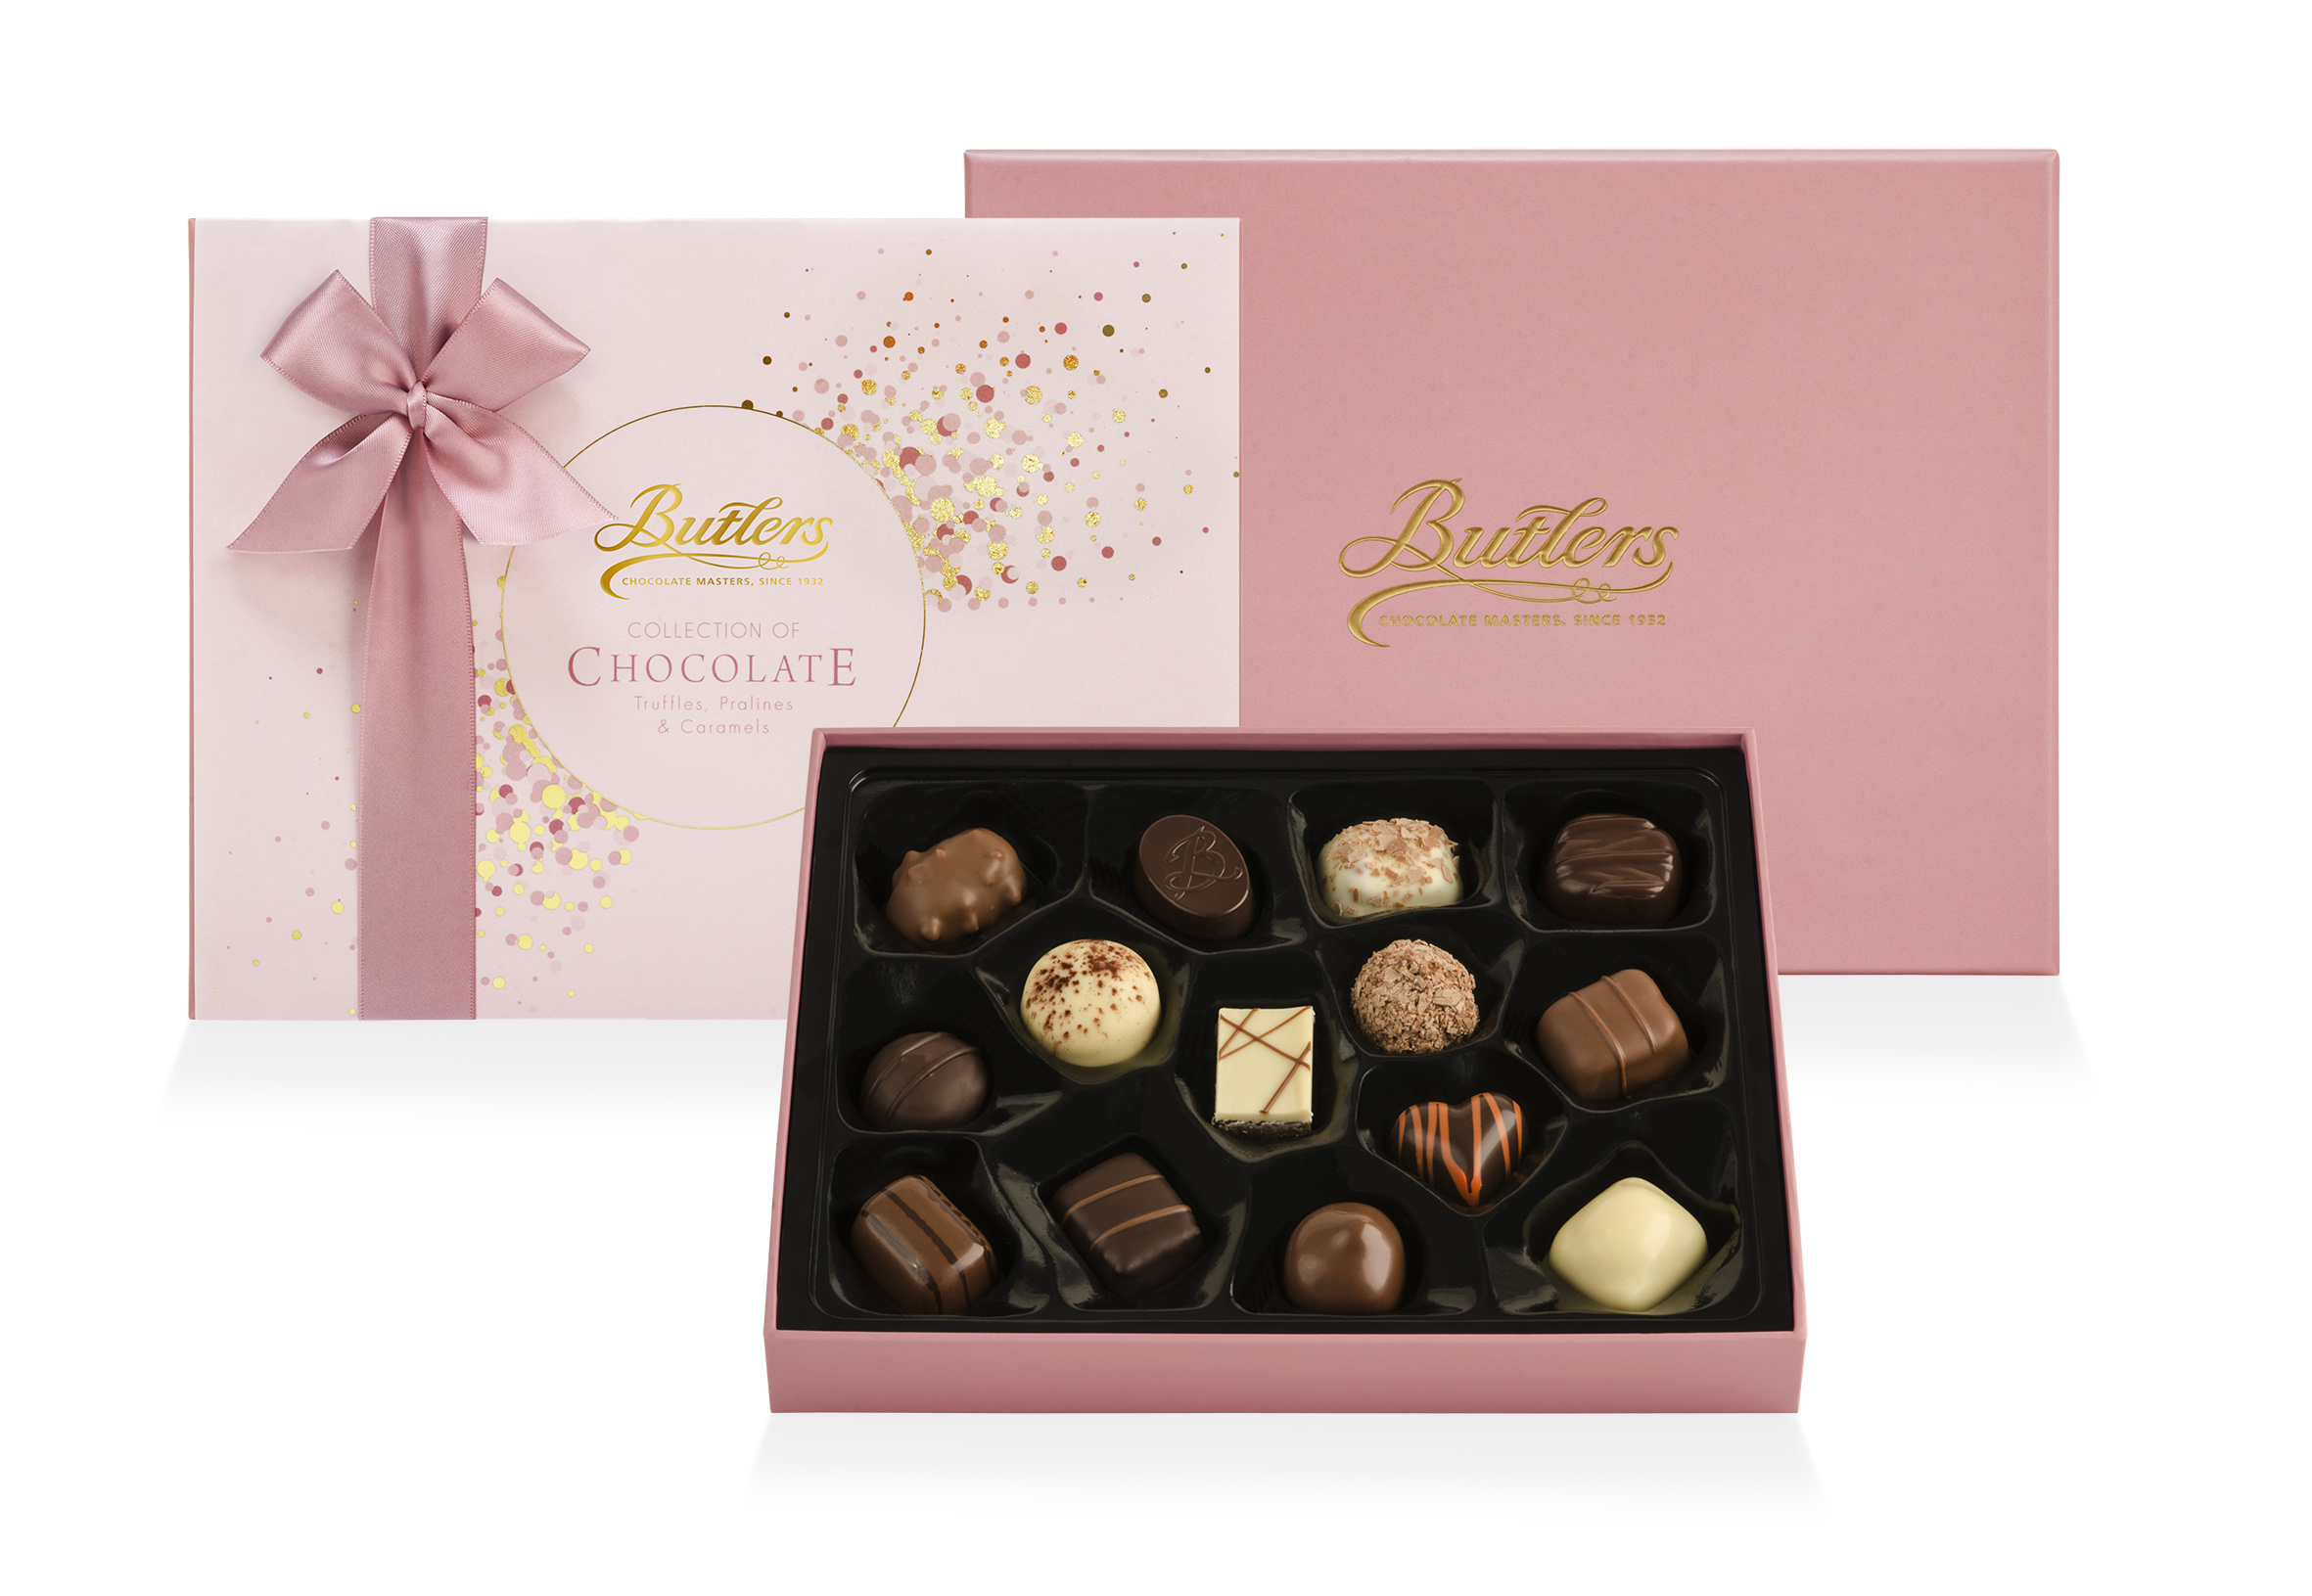 Butlers Chocolates unveil Mother's Day gift collection